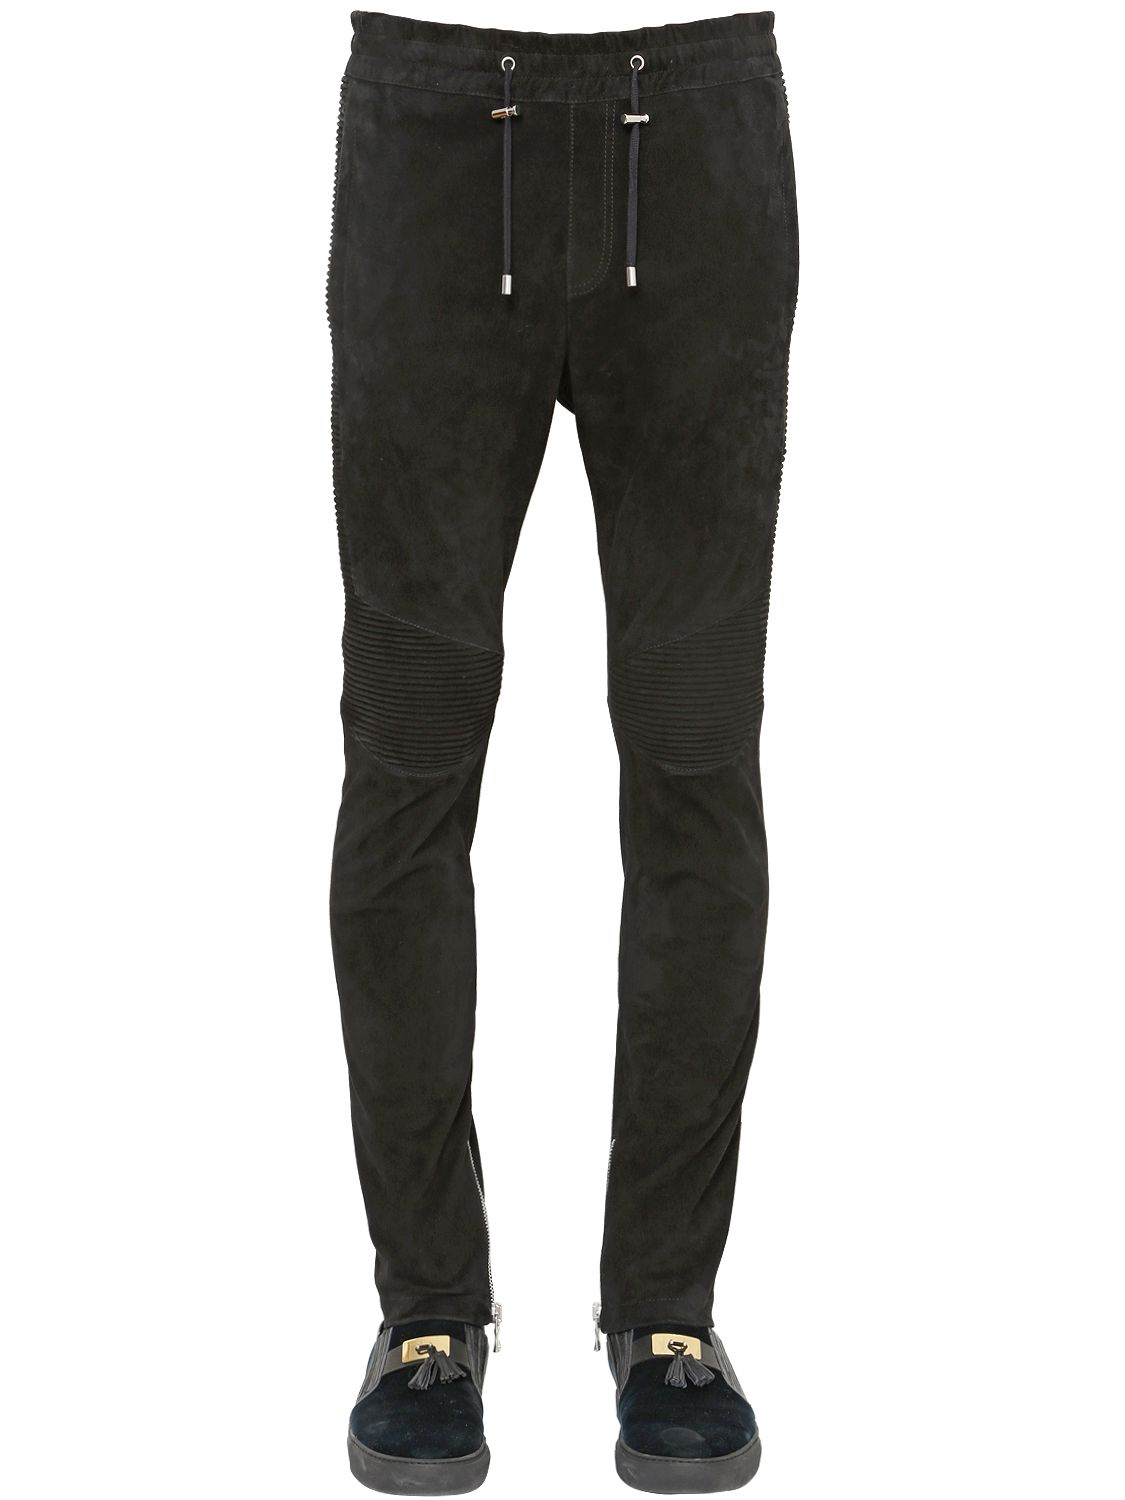 Find great deals on eBay for black suede pants. Shop with confidence.